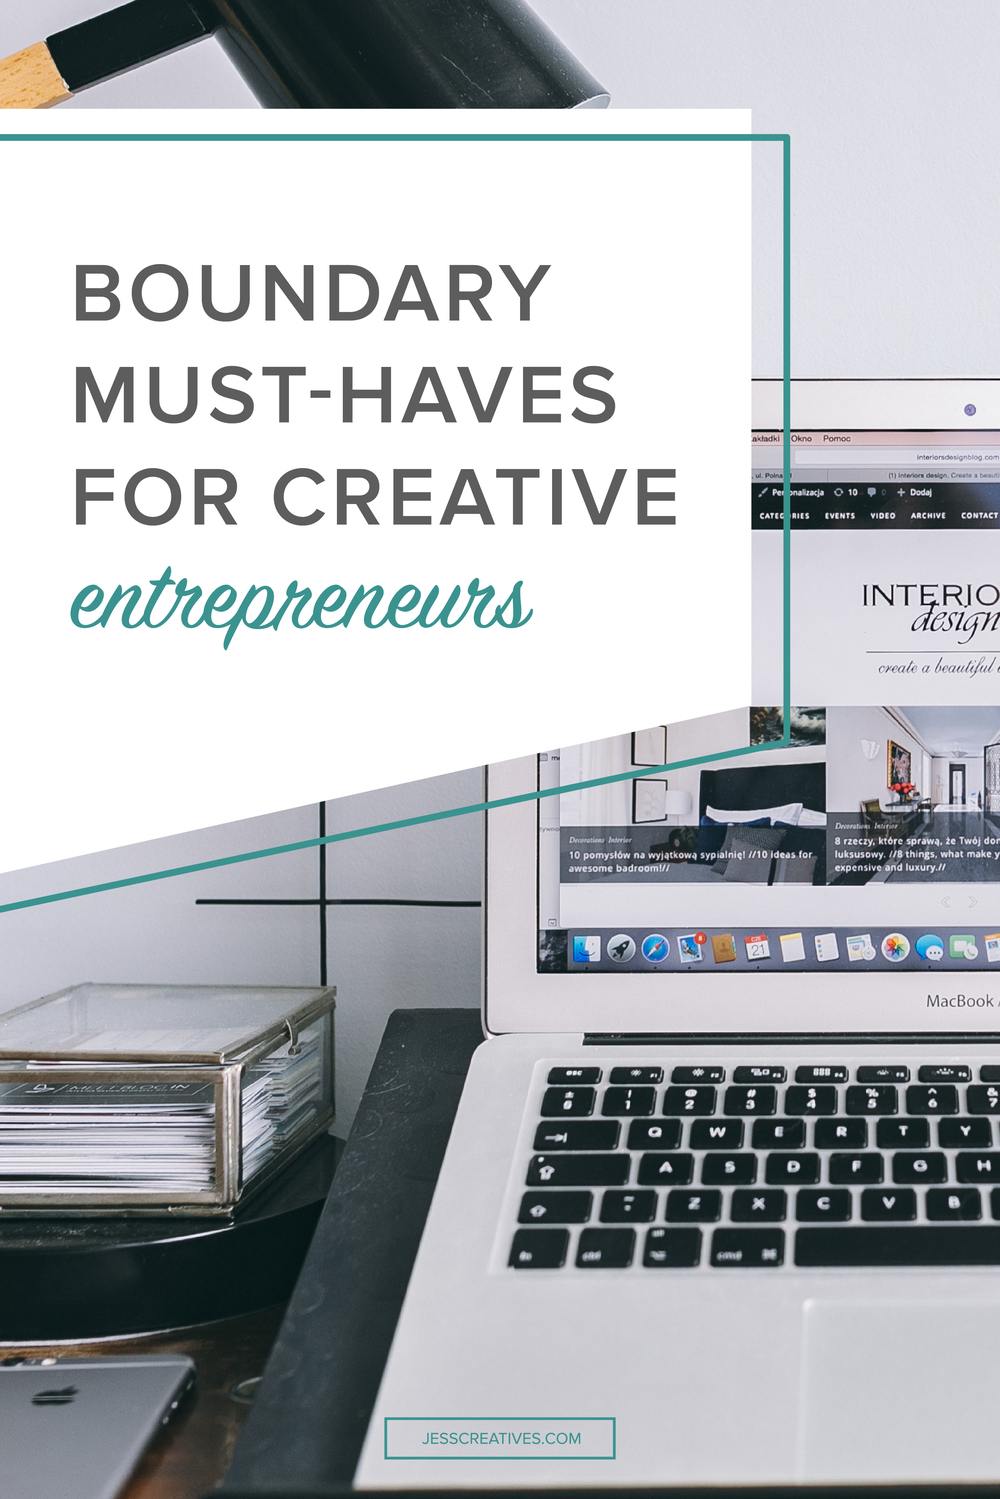 When I first started freelancing, I found it pretty challenging to navigate tough business situations that required setting boundaries. Many of these issues are things that I know a lot of entrepreneurs (especially those who primarily offer creative services) struggle with, so I decided to break down two of my toughest moments for you.